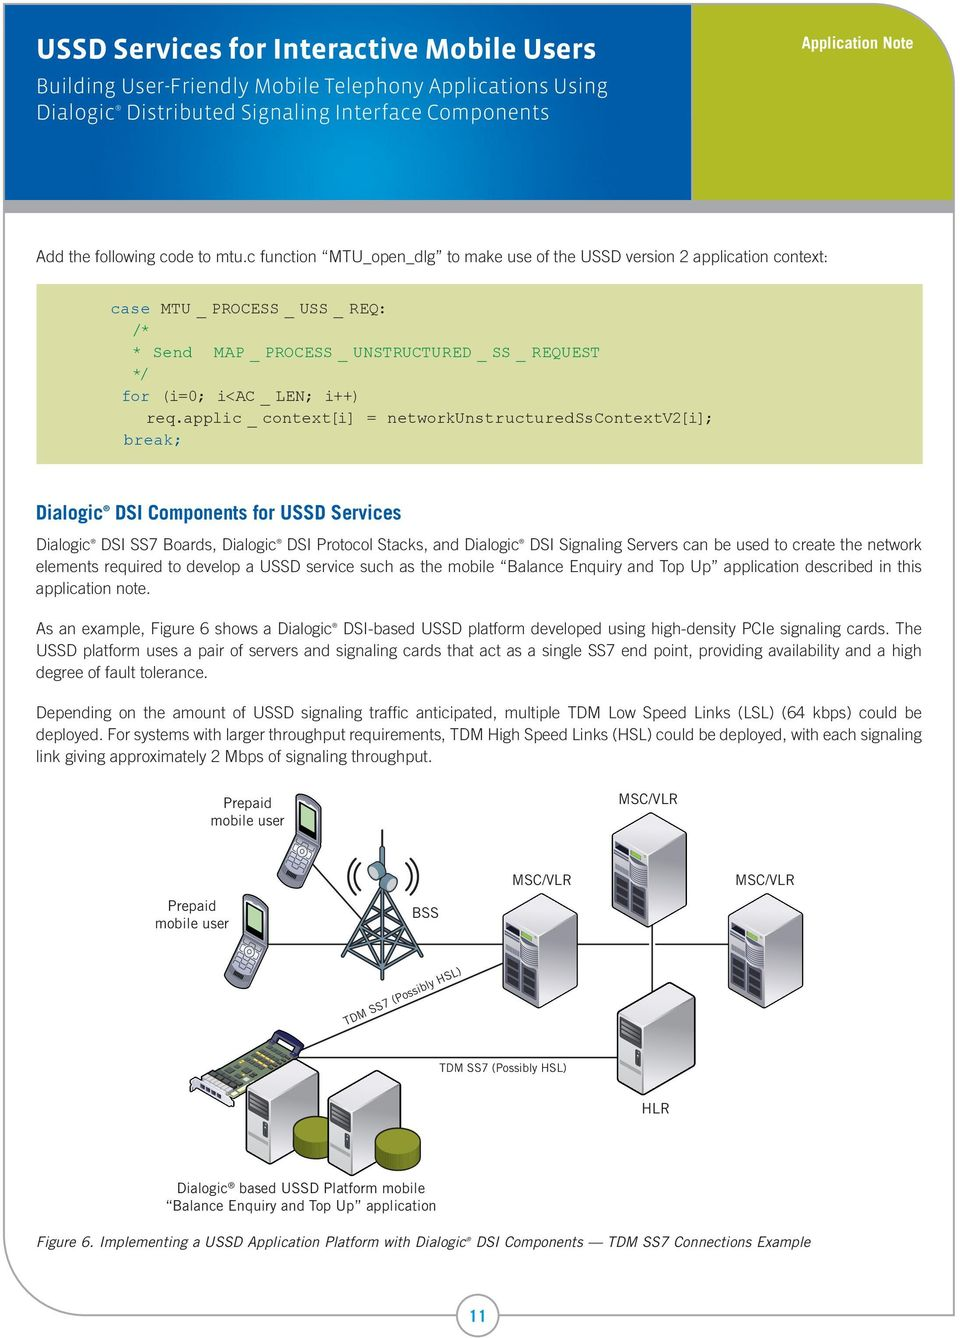 USSD Services for Interactive Mobile Users - PDF